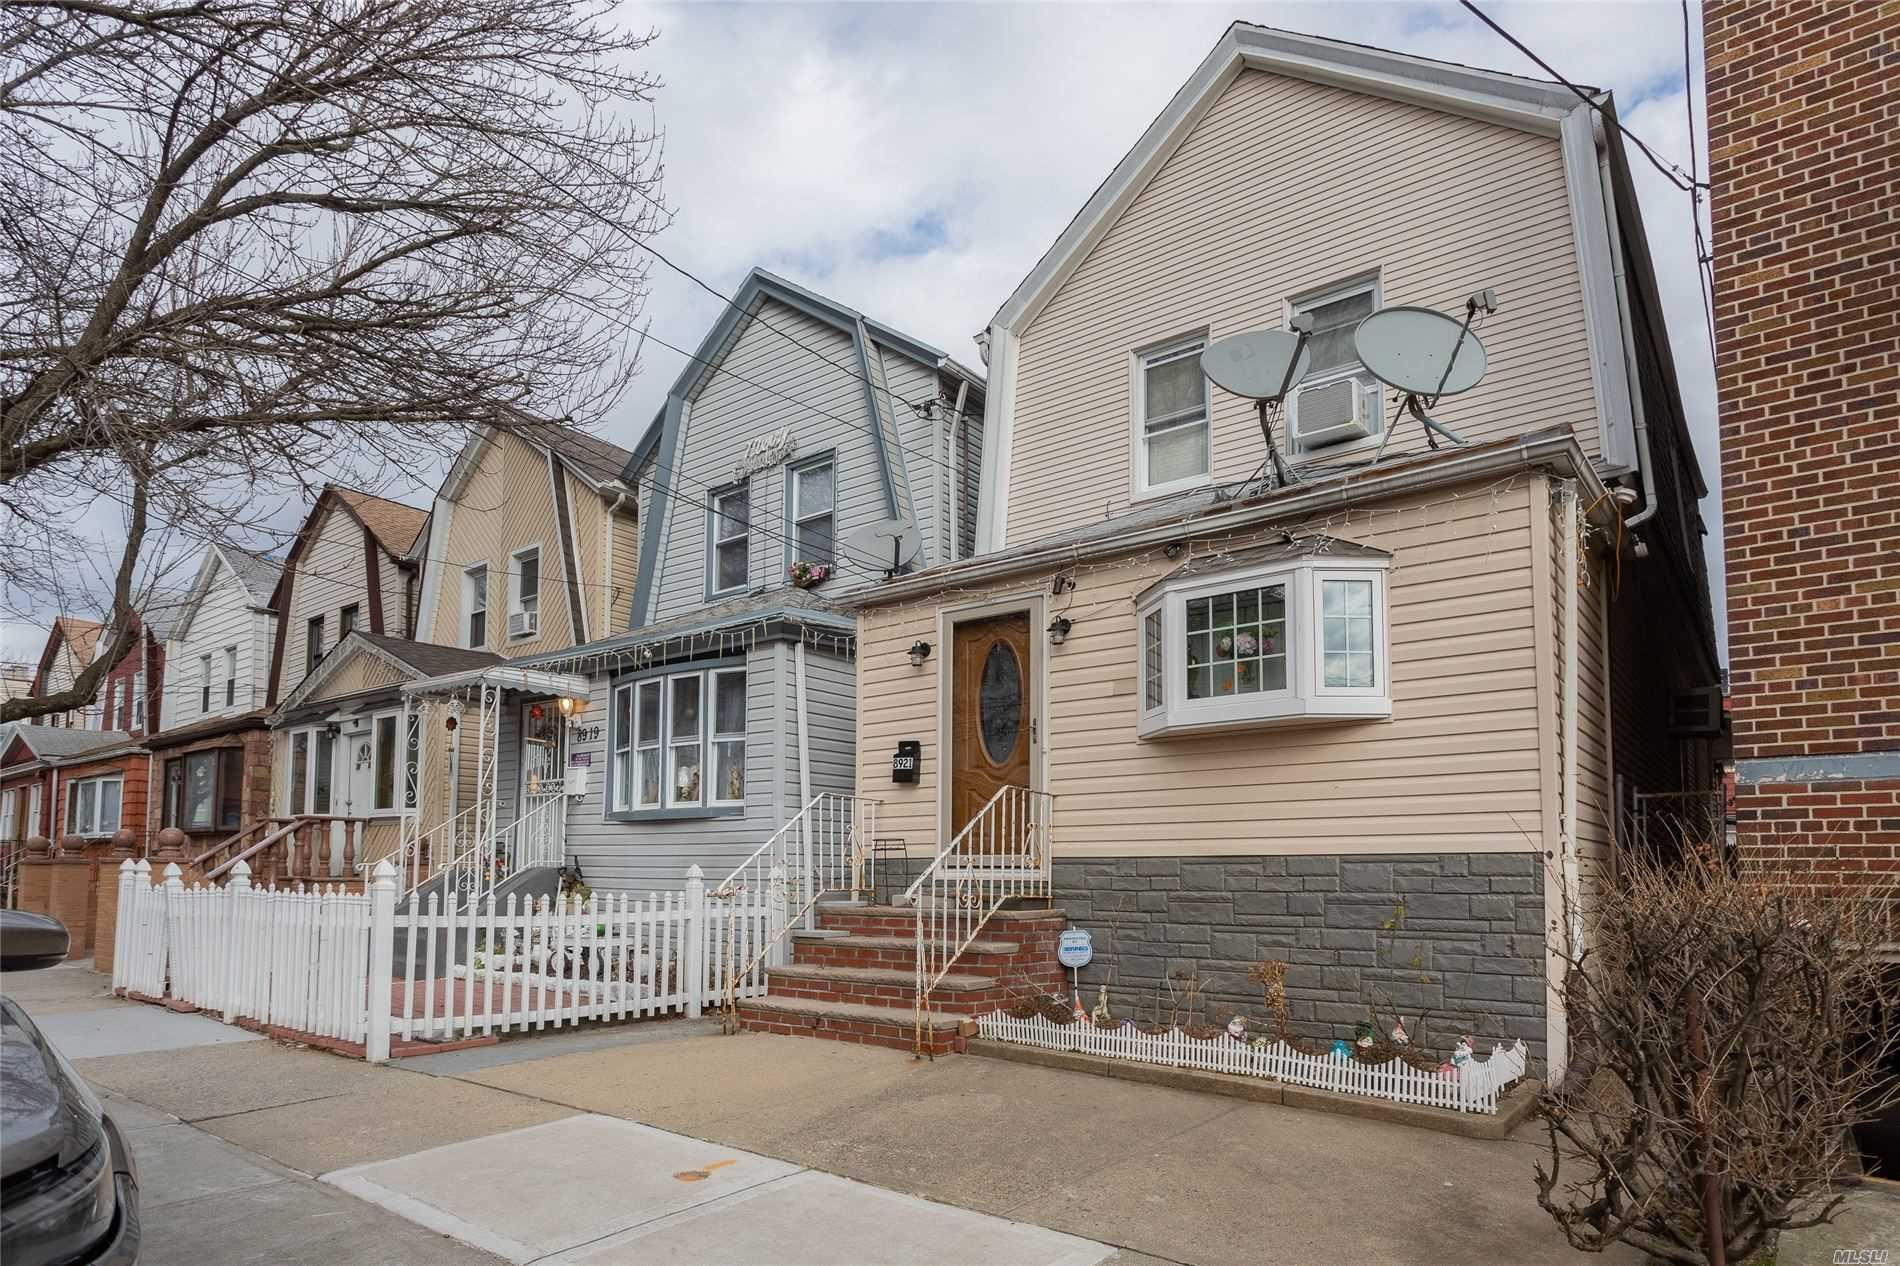 89-21 86th Street, Woodhaven, NY 11421 - MLS#: 3198799